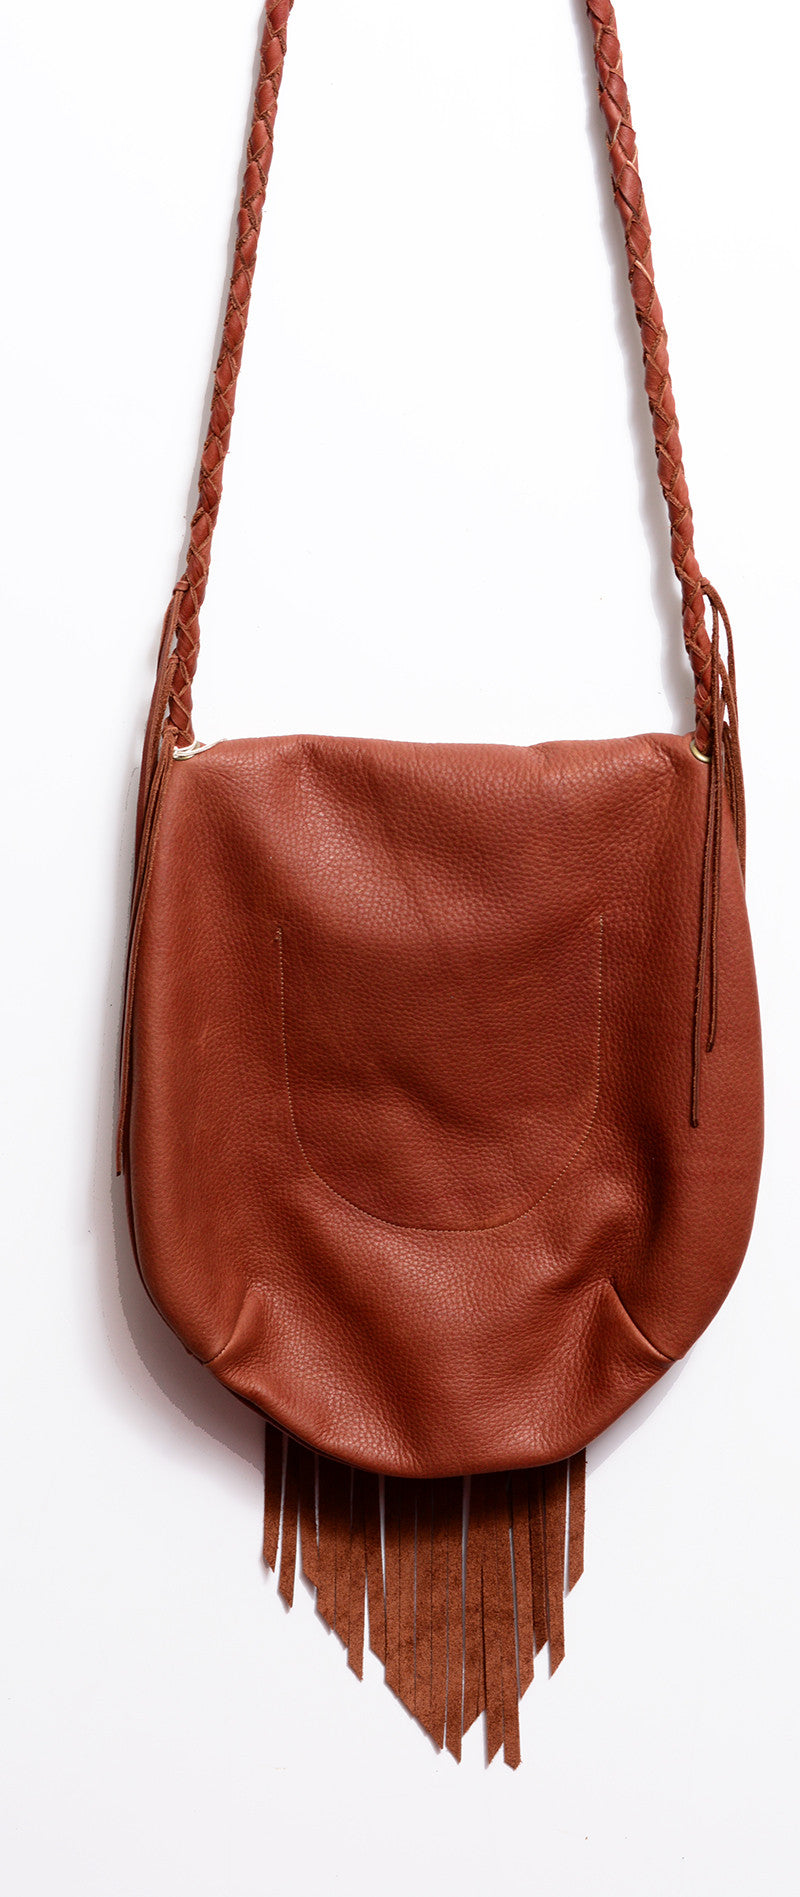 NATIVE RAINBOW - SAHARA FRINGE HOBO BAG IN BROWN - FETISH